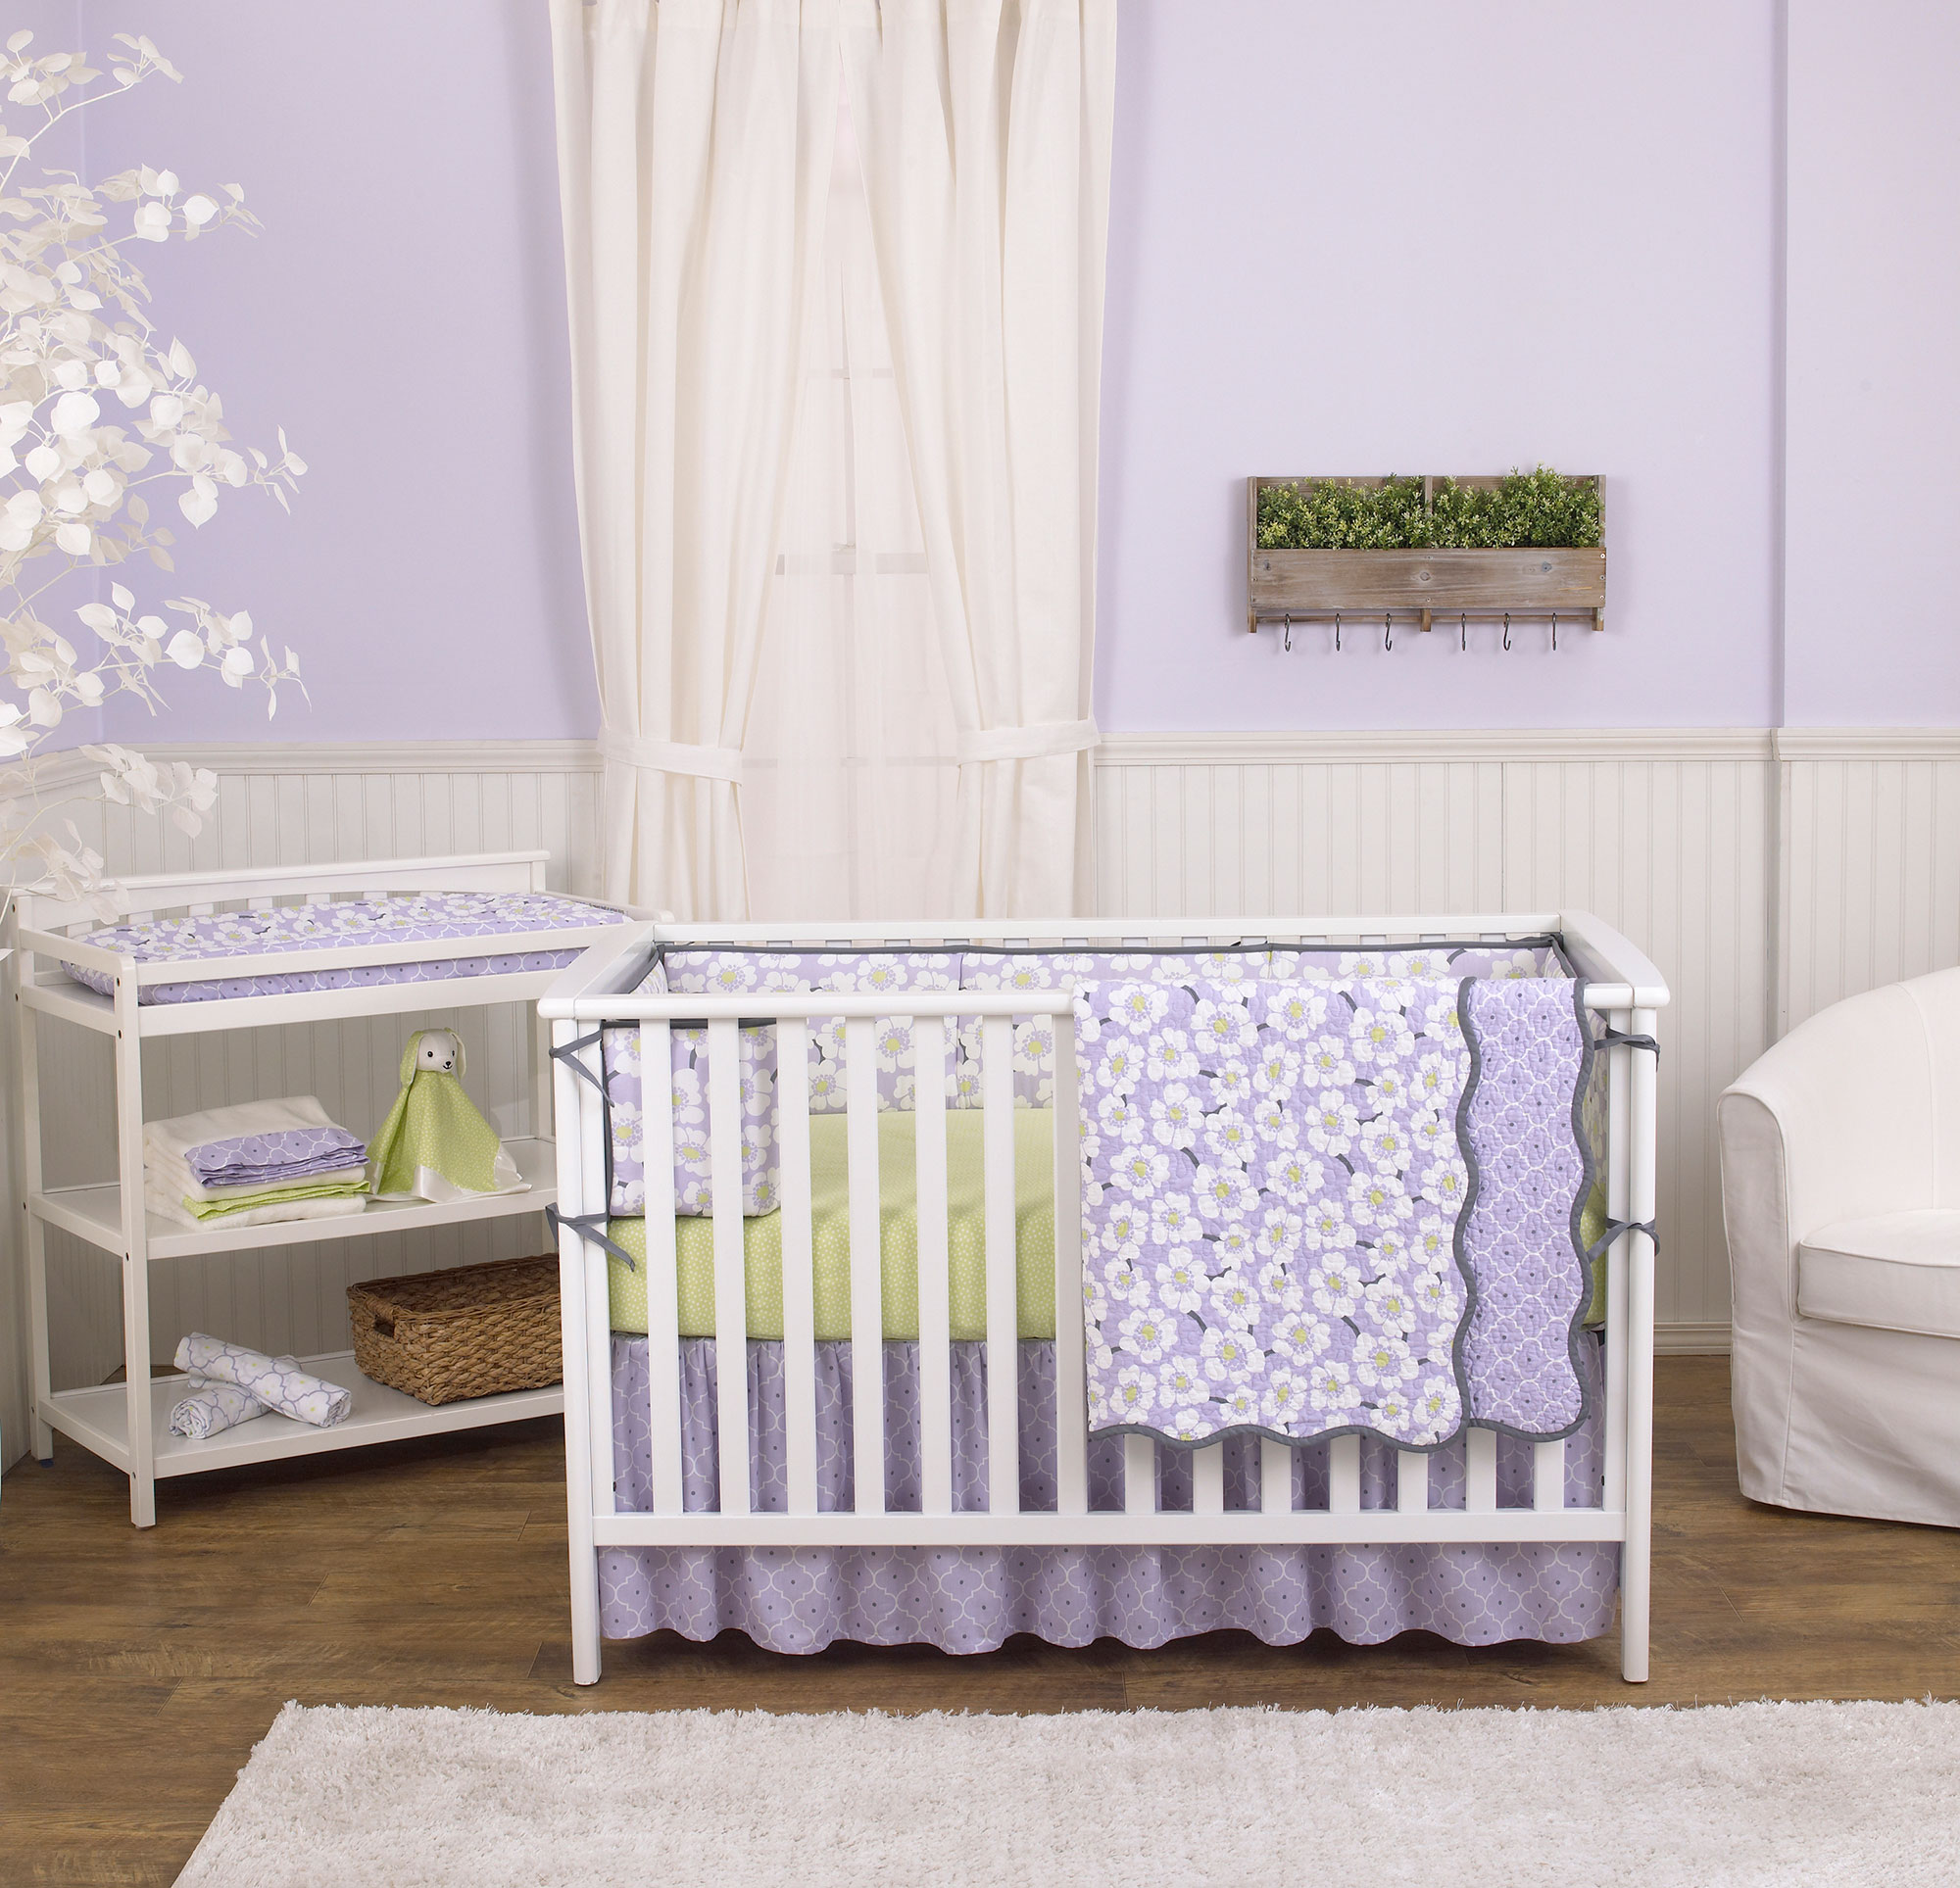 Lavender Purple Poppy Flowers Floral 4 Piece Crib Bedding Set By Balboa Baby For Sale Online Ebay